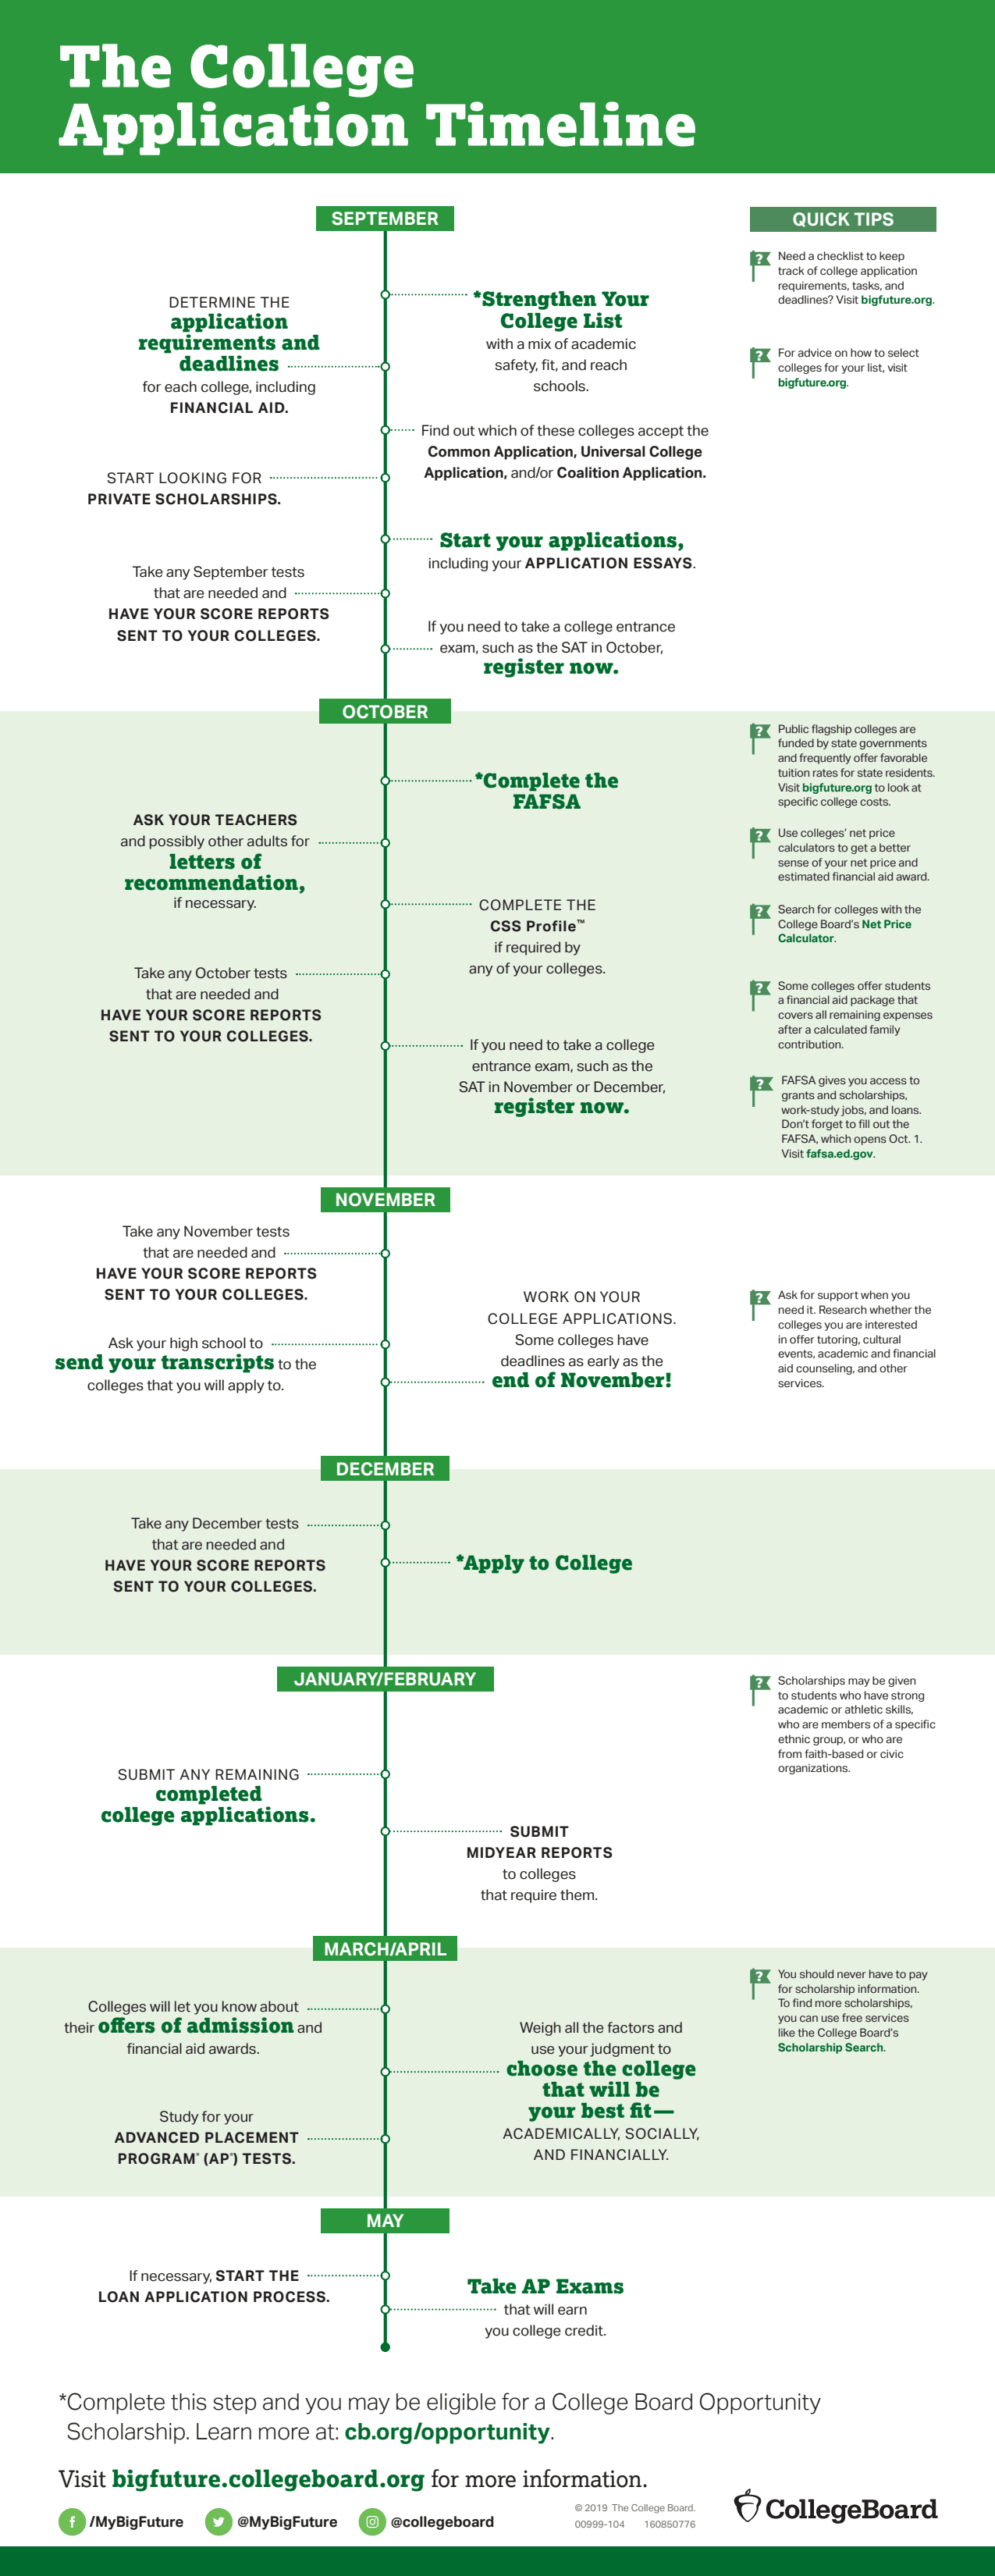 First page of the PDF file: college-application-timeline